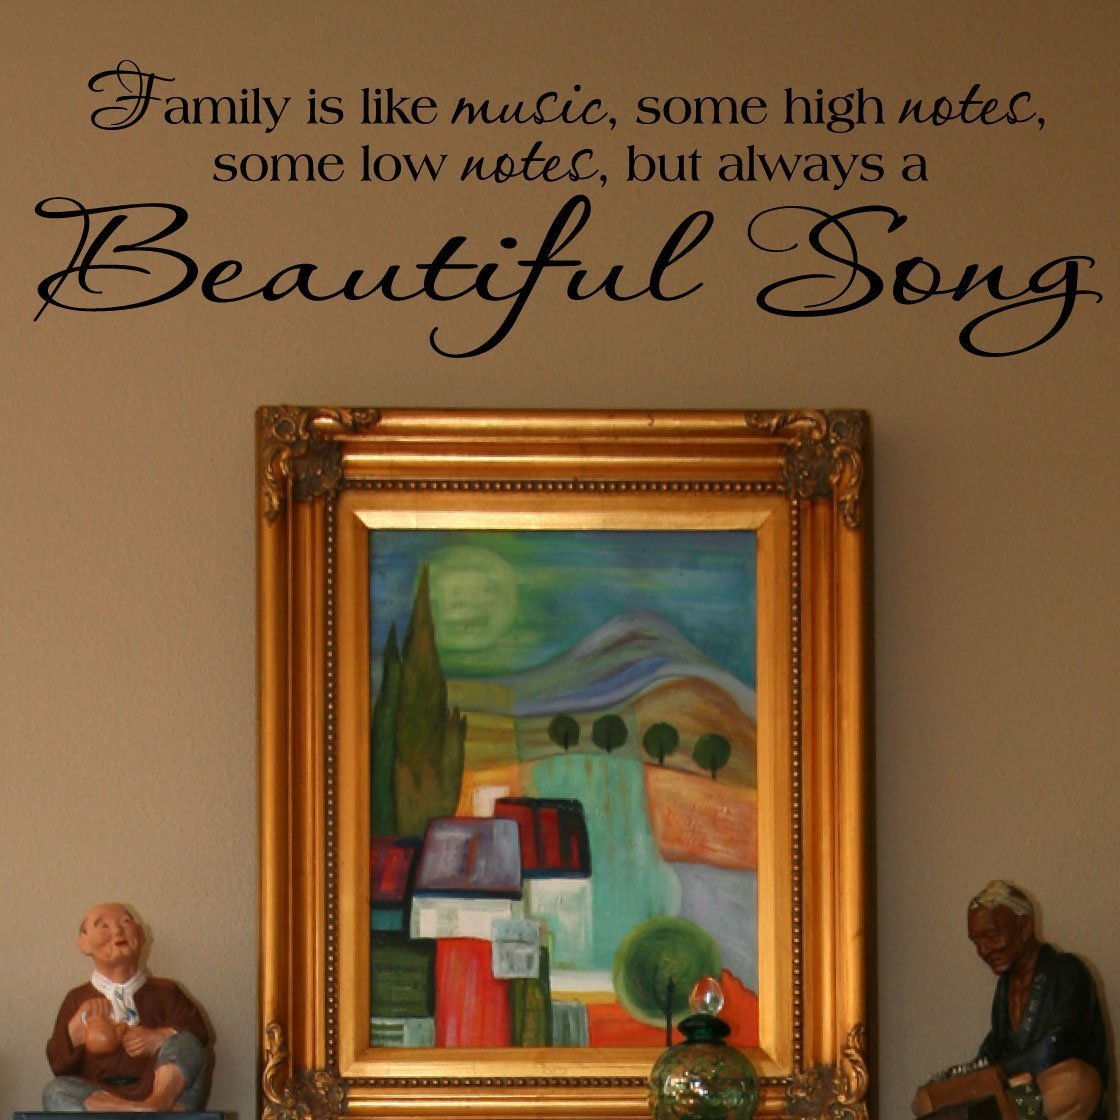 amazon com family is like music some high notes some low notes amazon com family is like music some high notes some low notes but always a beautiful song vinyl lettering wall sayings home kitchen